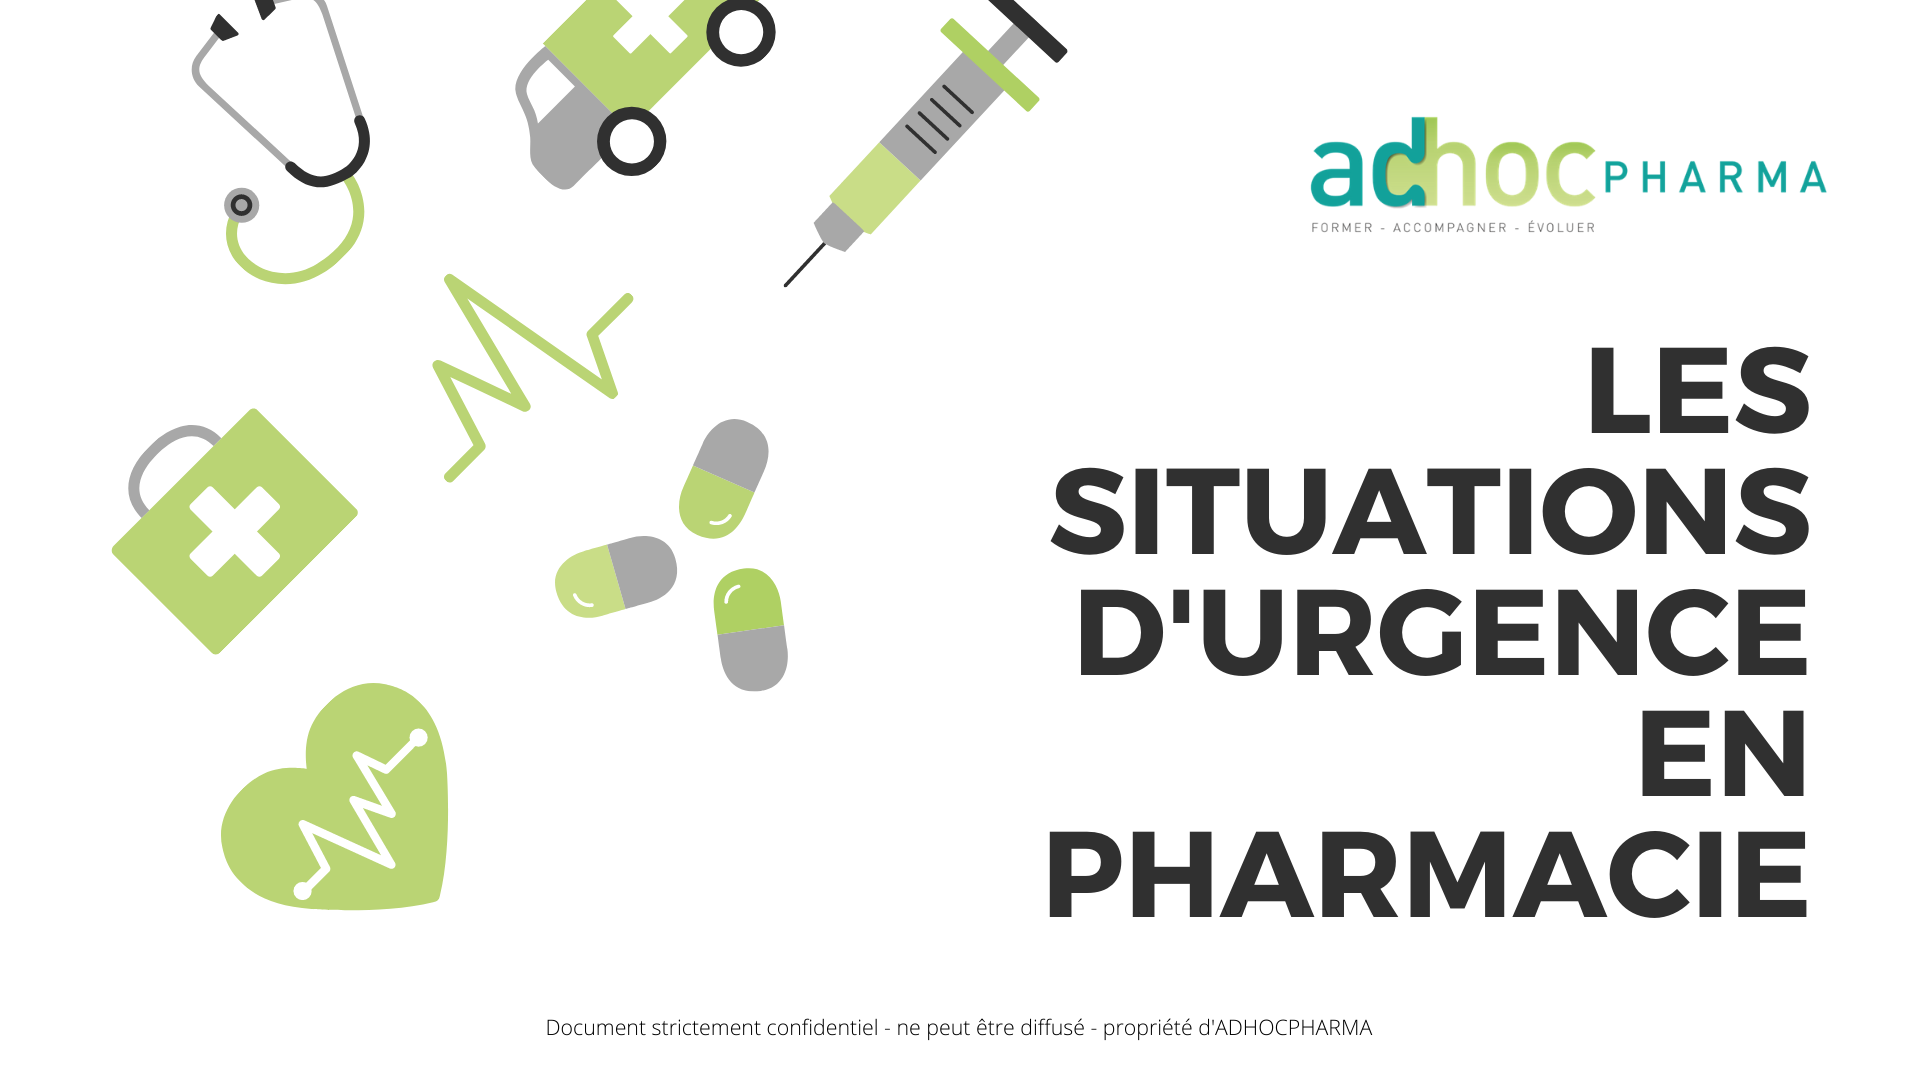 Les situations d'urgence en pharmacie